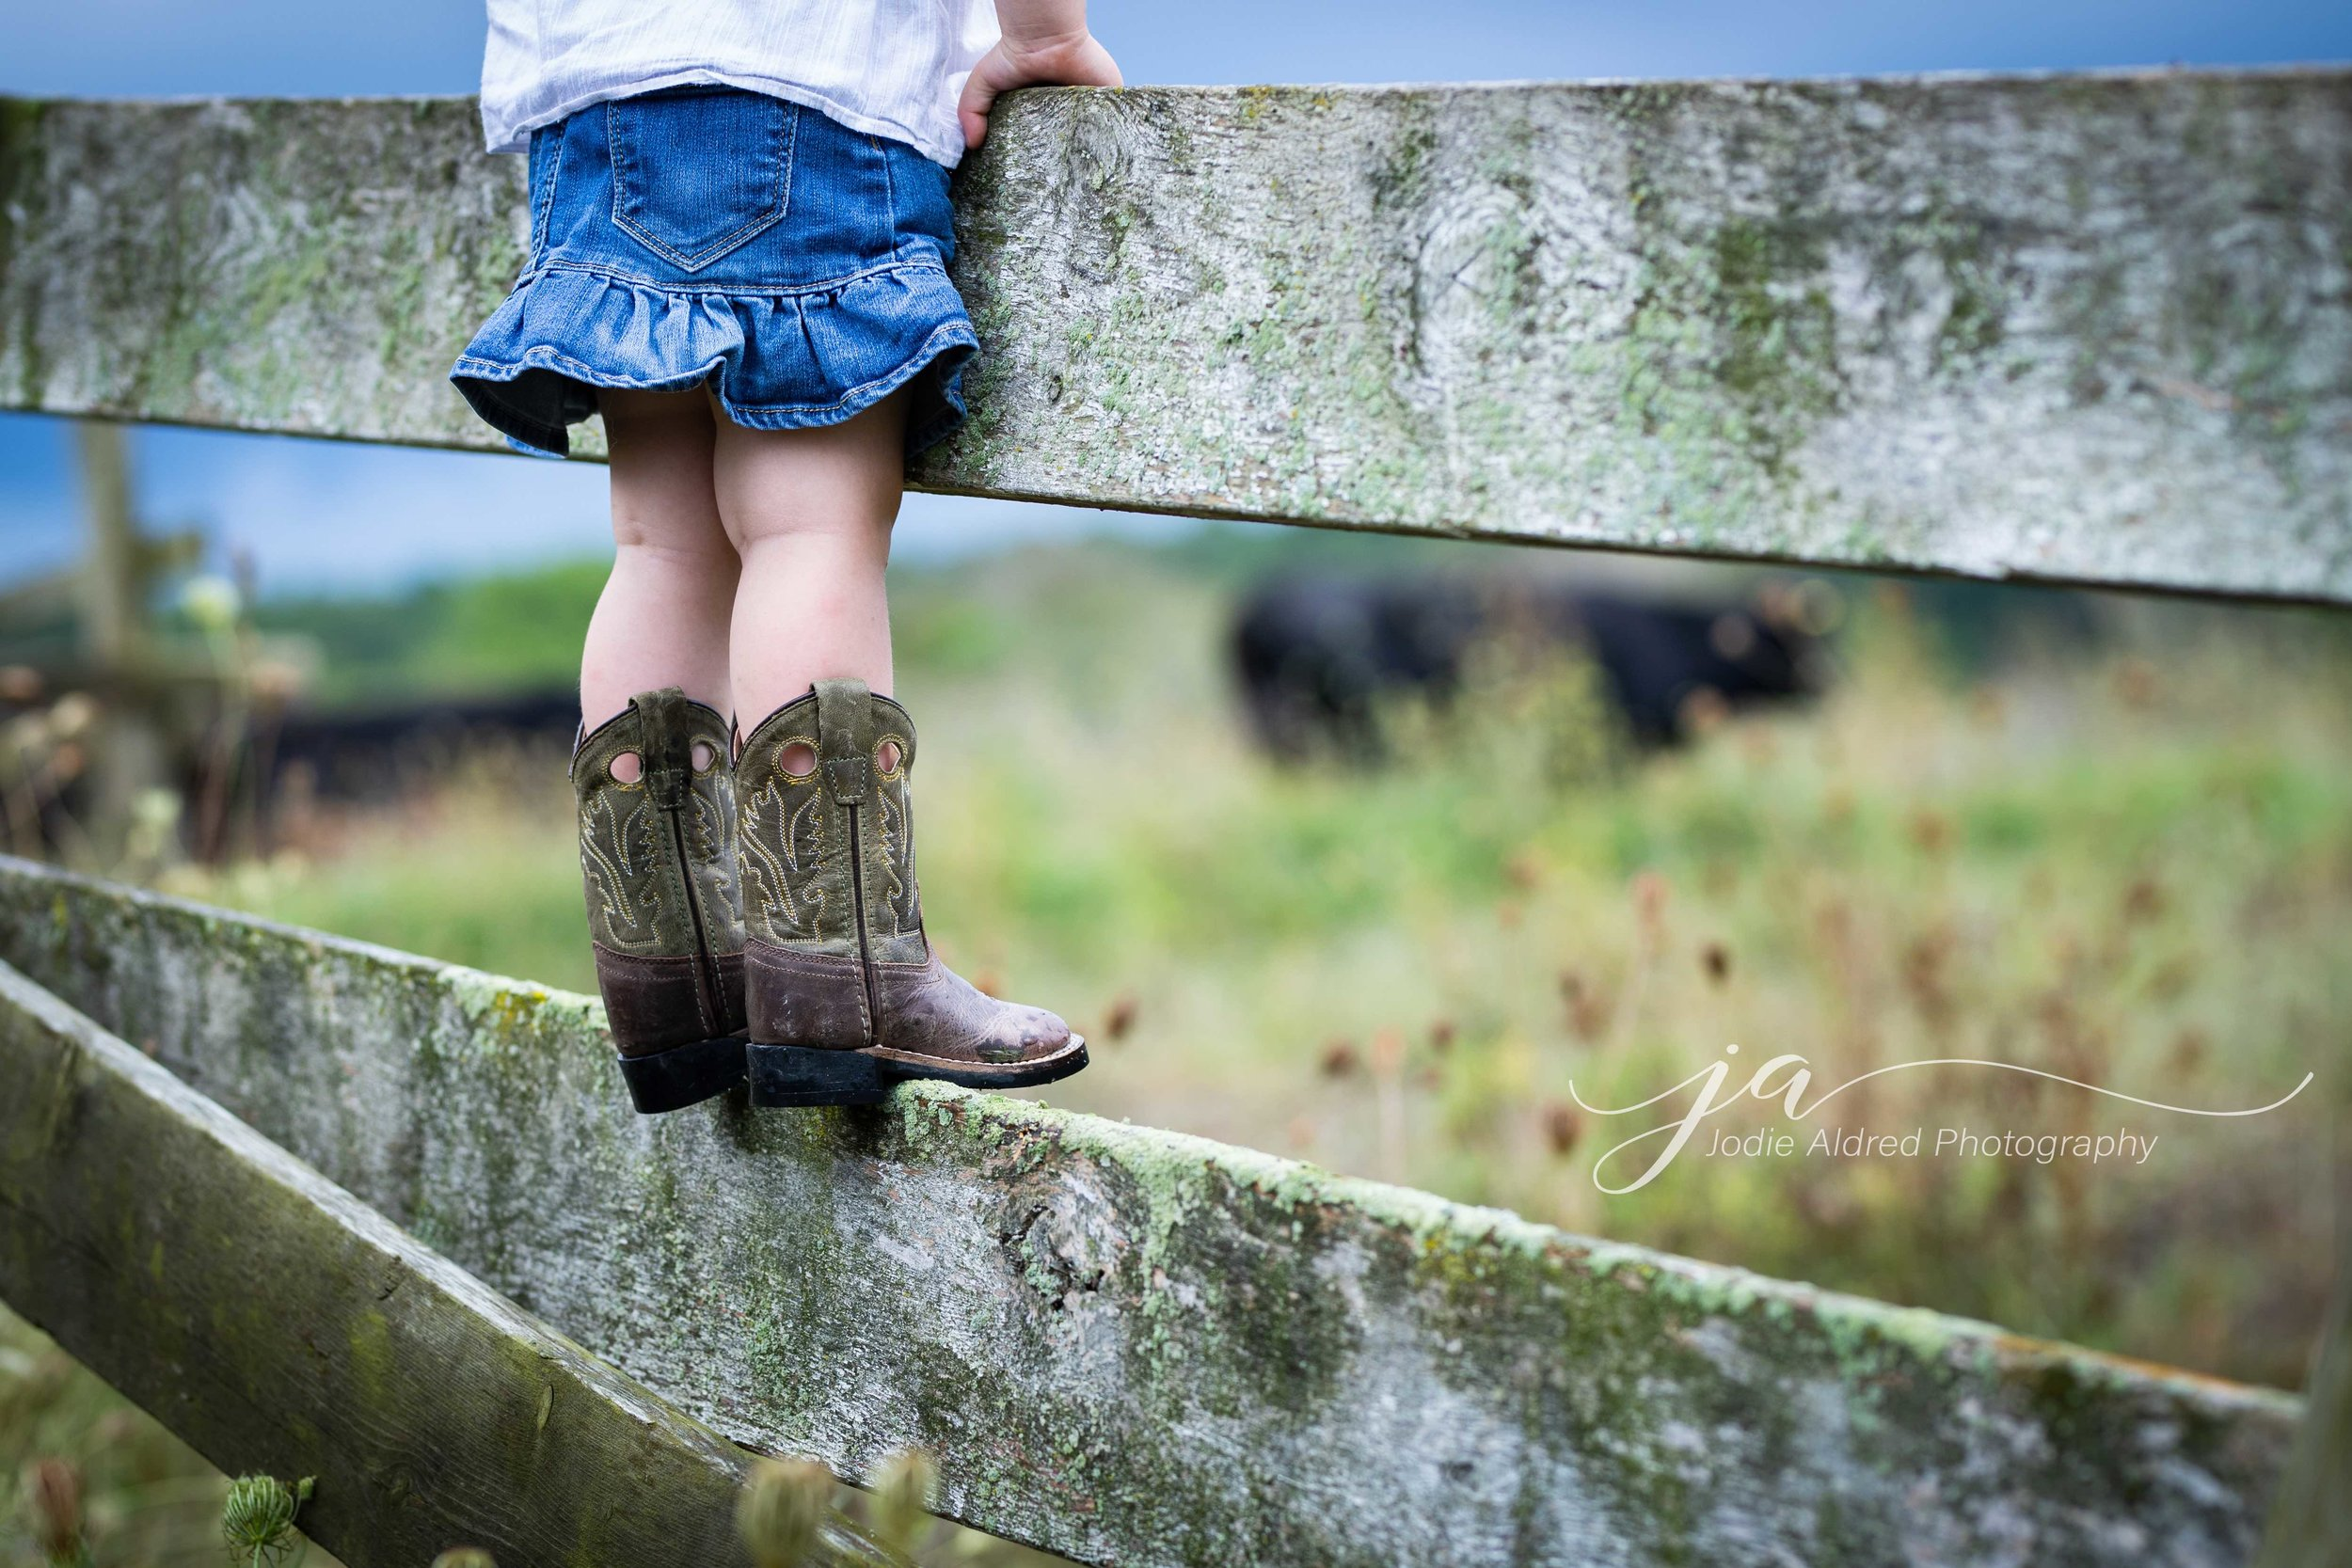 Jodie-Aldred-Photography-Chatham-Kent-Elgin-Middlesex-London-Ontario-Farm-Family-Ontario-Boots-Cowboy.jpg